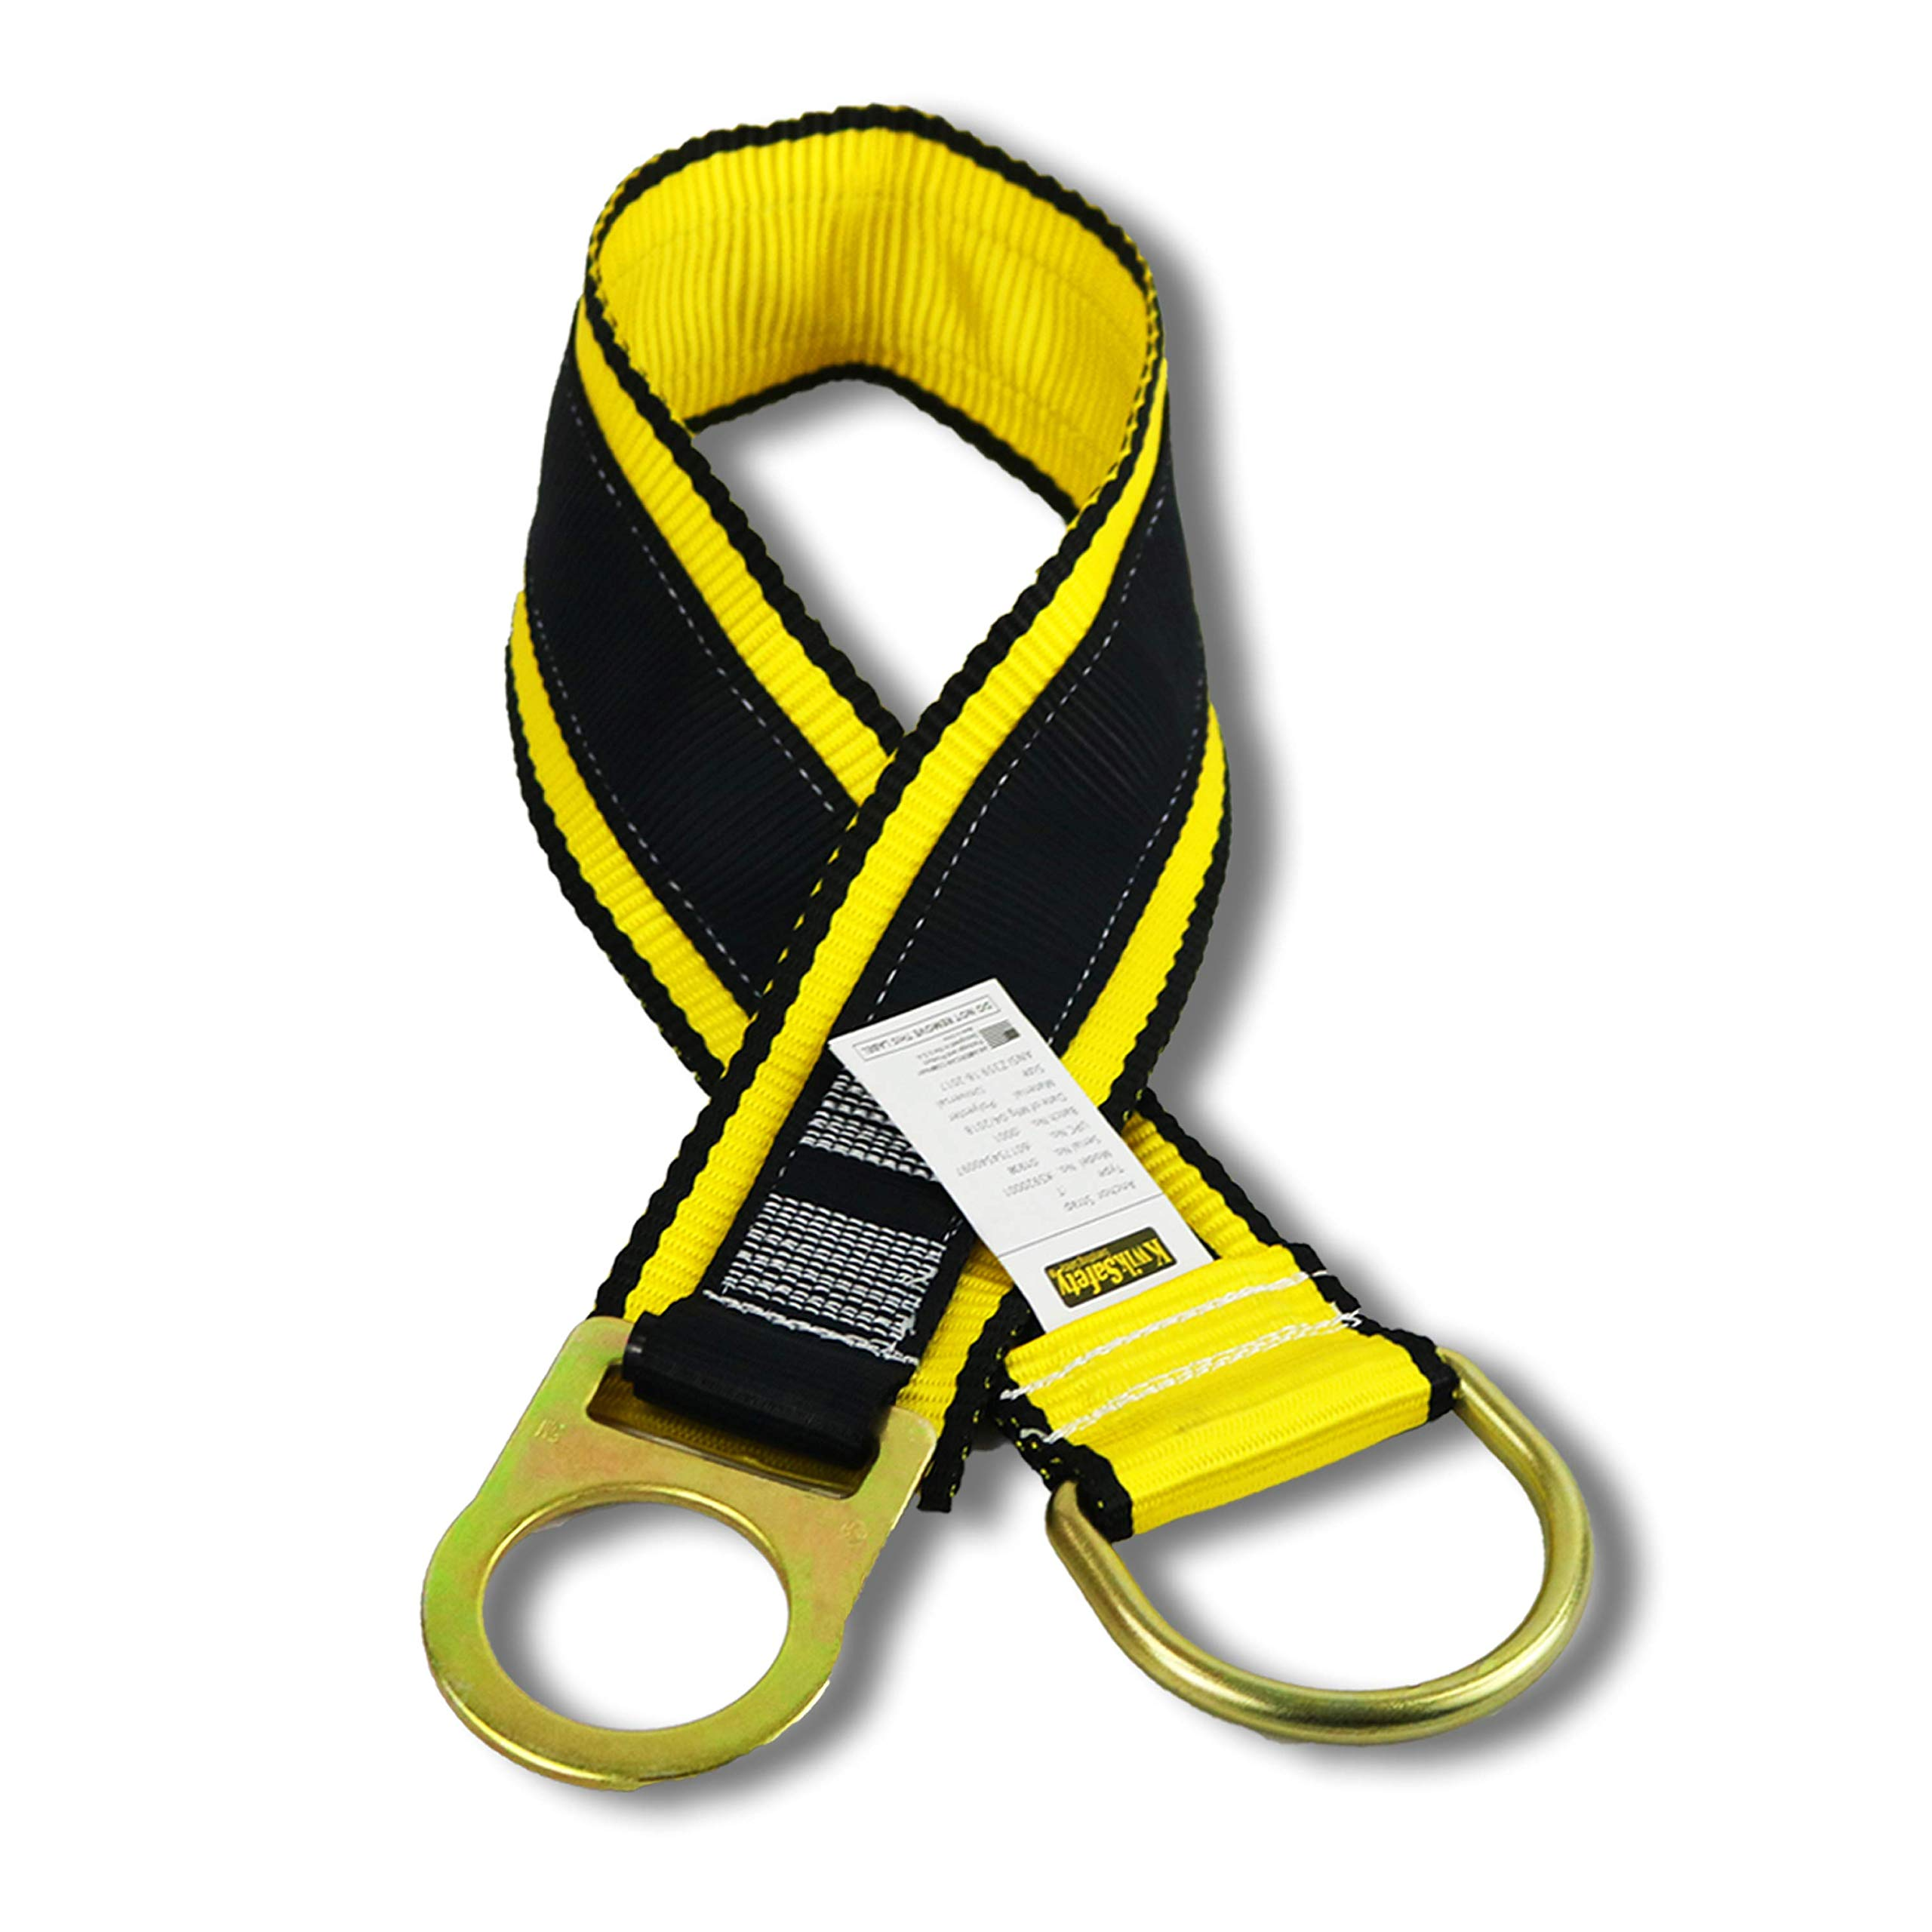 KwikSafety (Charlotte, NC) GIBBON GRIP 3 ft Anchor Choker Cross Arm Strap Fall Arrest ANSI Pass Thru Tie Off Safety Sling Anchorage Connector Fall Protection Harness Lanyard SRL Construction PPE Kit by KwikSafety